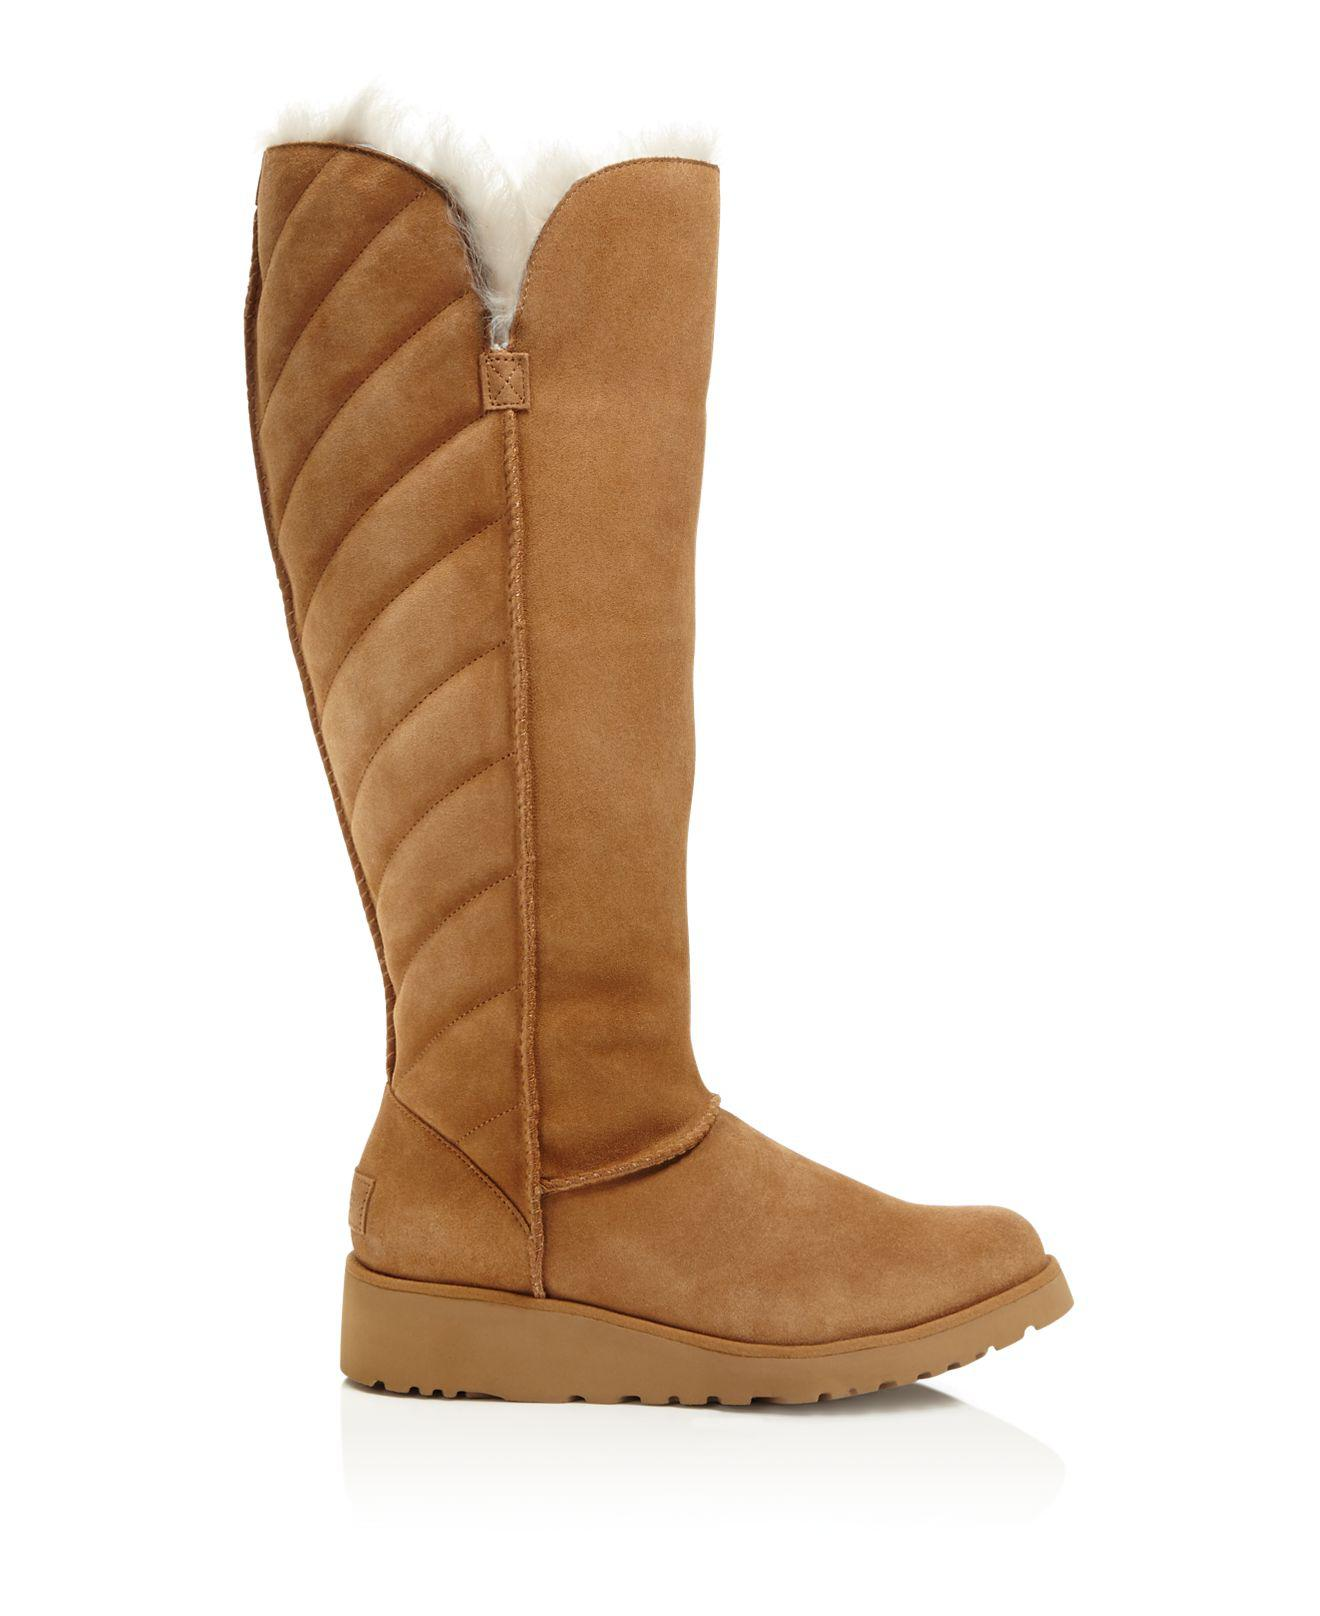 82c5050f650 Lyst - UGG Rosalind Quilted Tall Boots in Brown